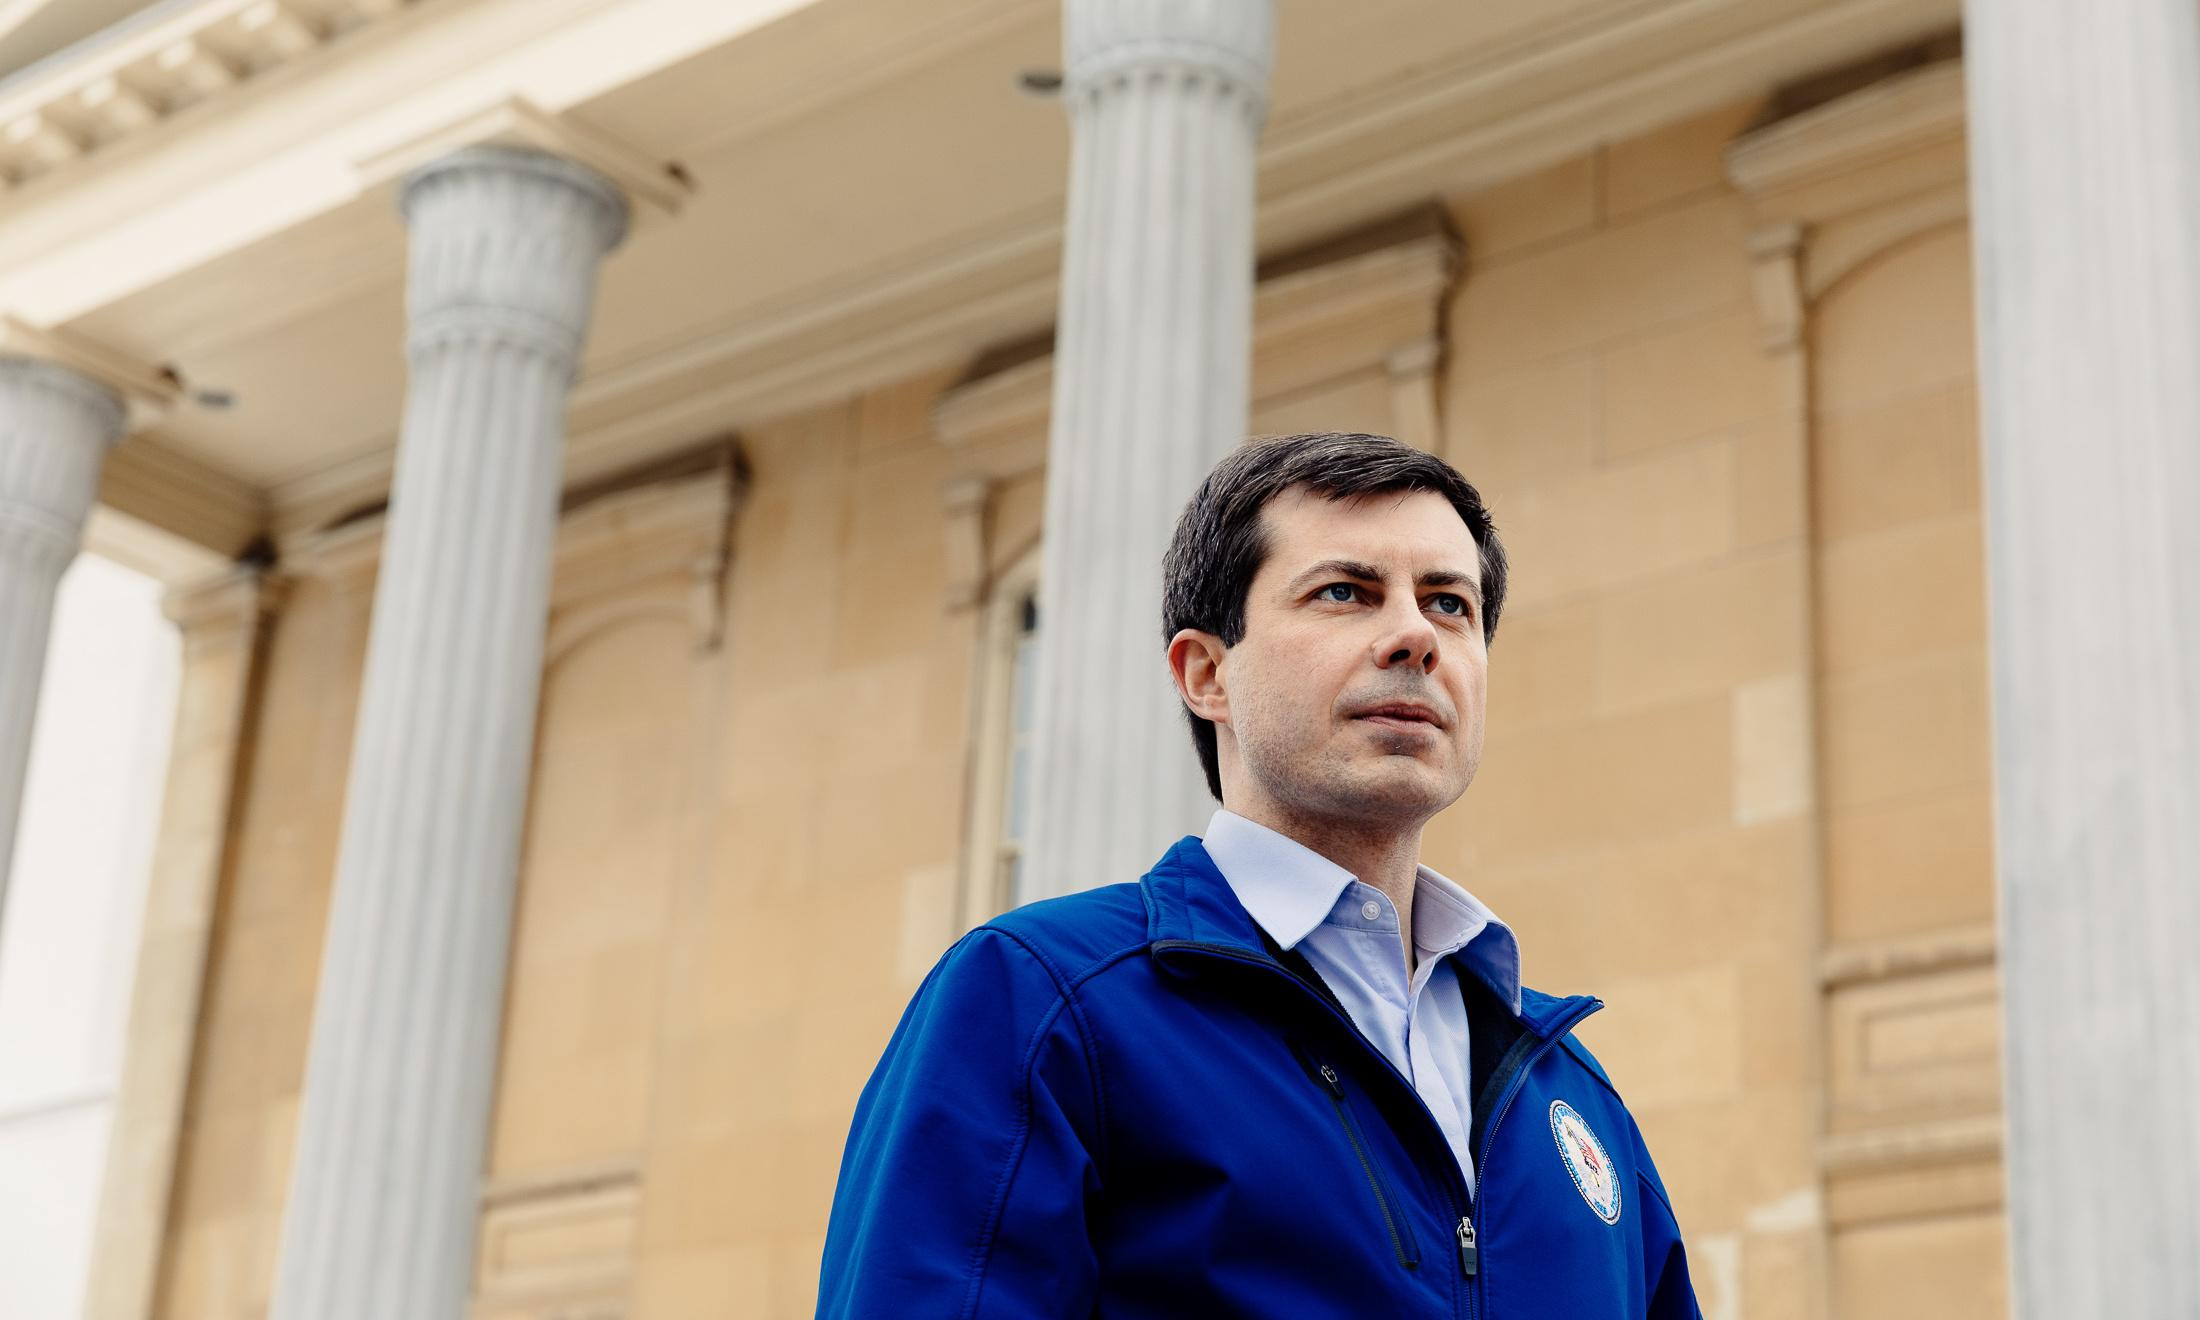 Pete Buttigieg for president? Long-shot stands out in crowded field